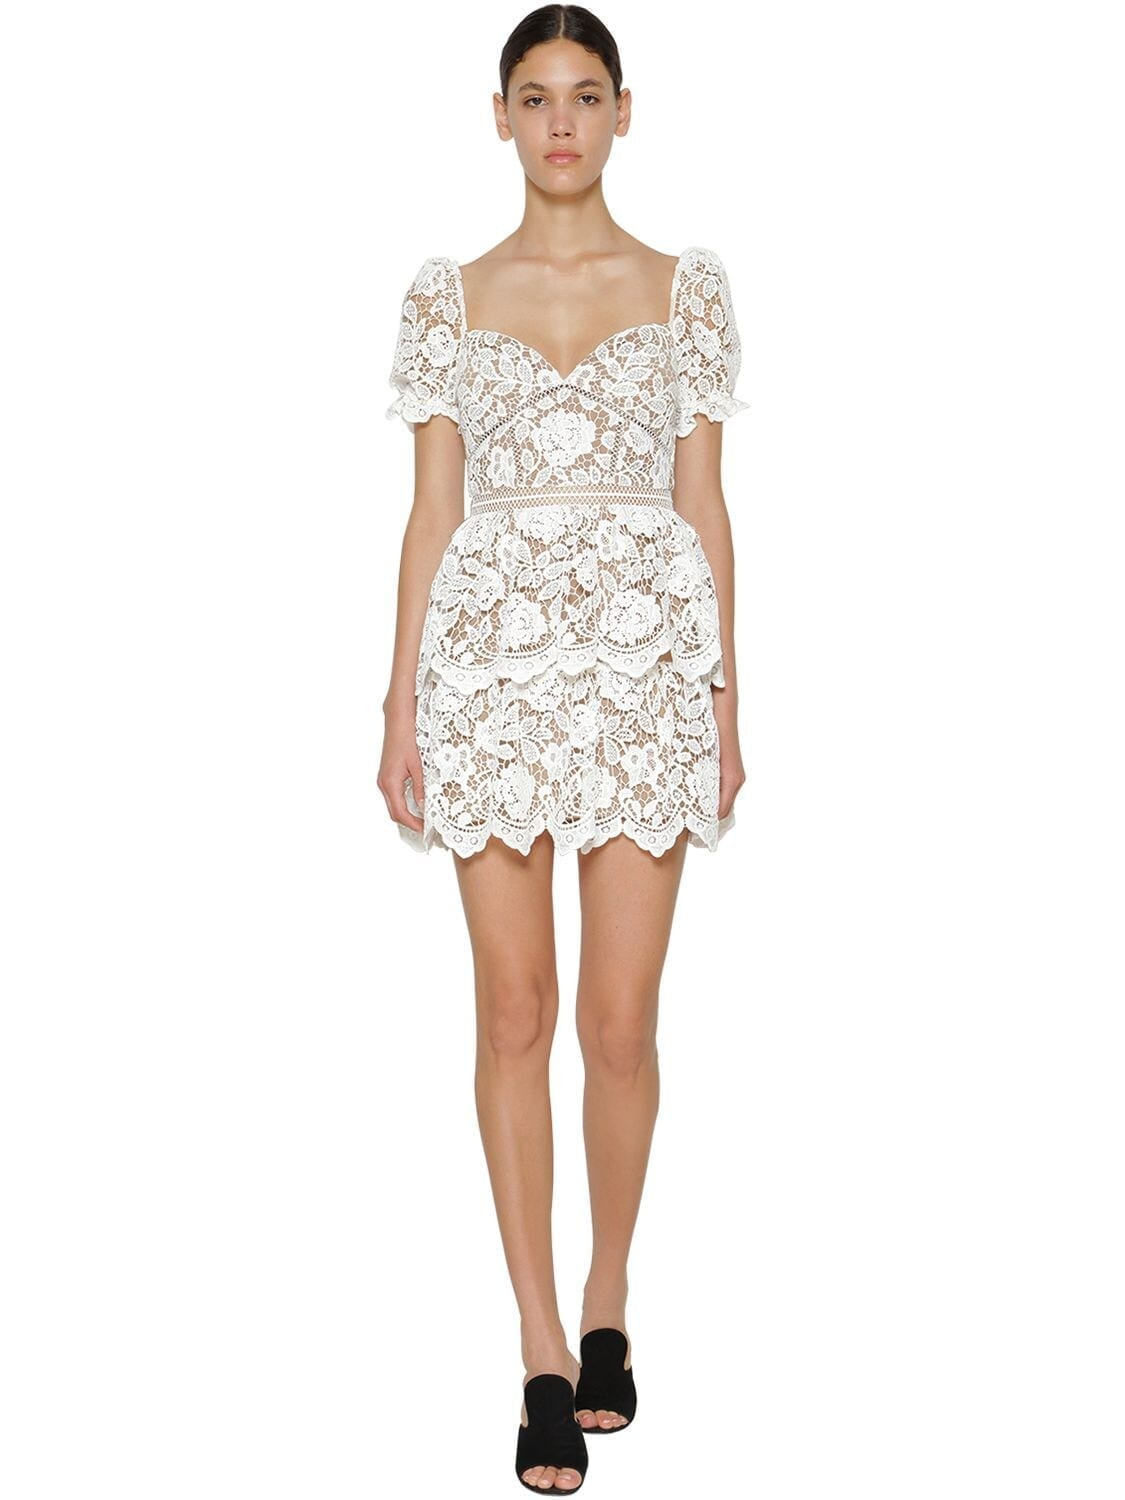 SELF-PORTRAIT Flower Lace Mini Dress